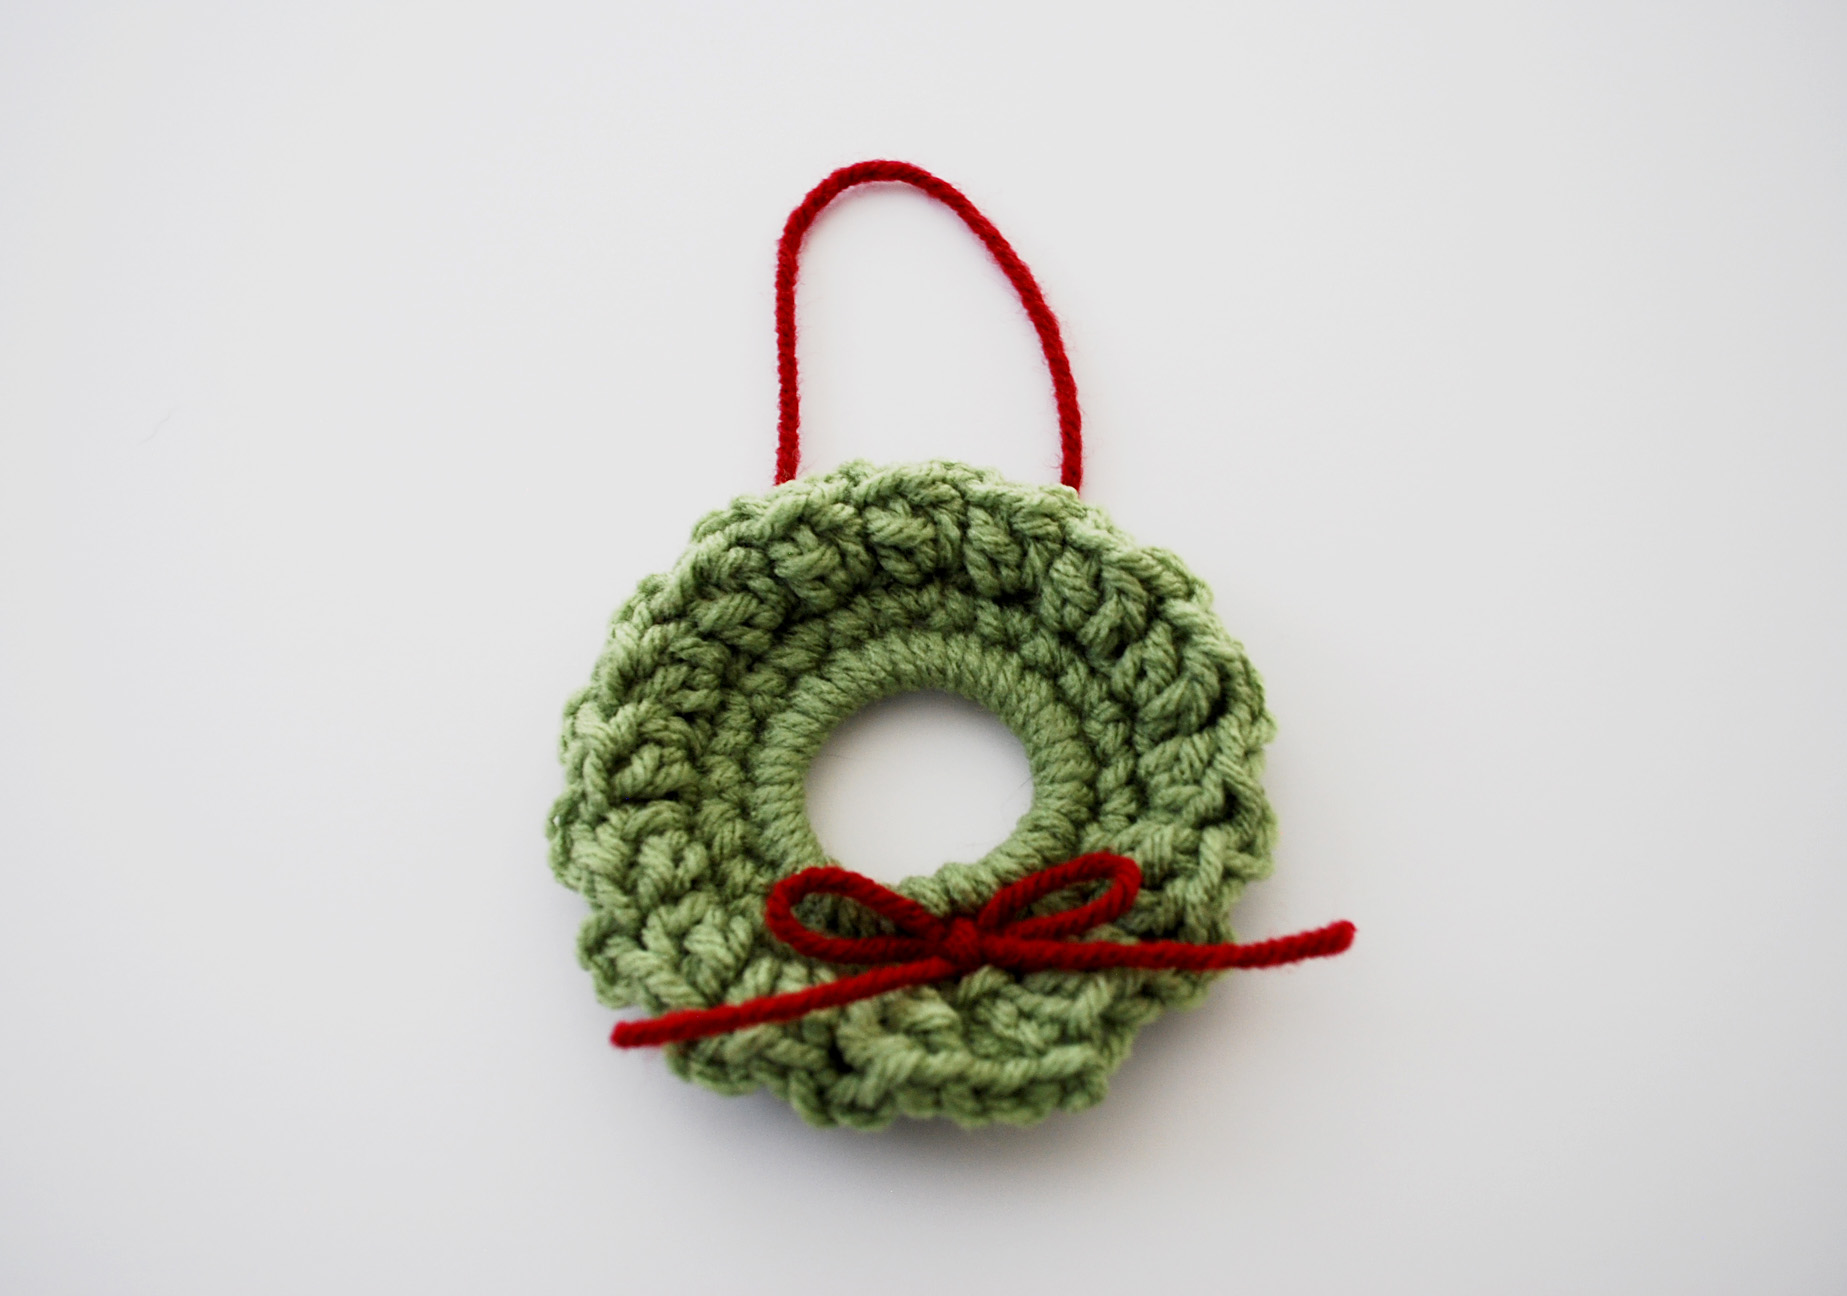 Free Crochet Pattern For Christmas Wreath : Pics Photos - Crocheted Christmas Wreath Ornaments Free ...